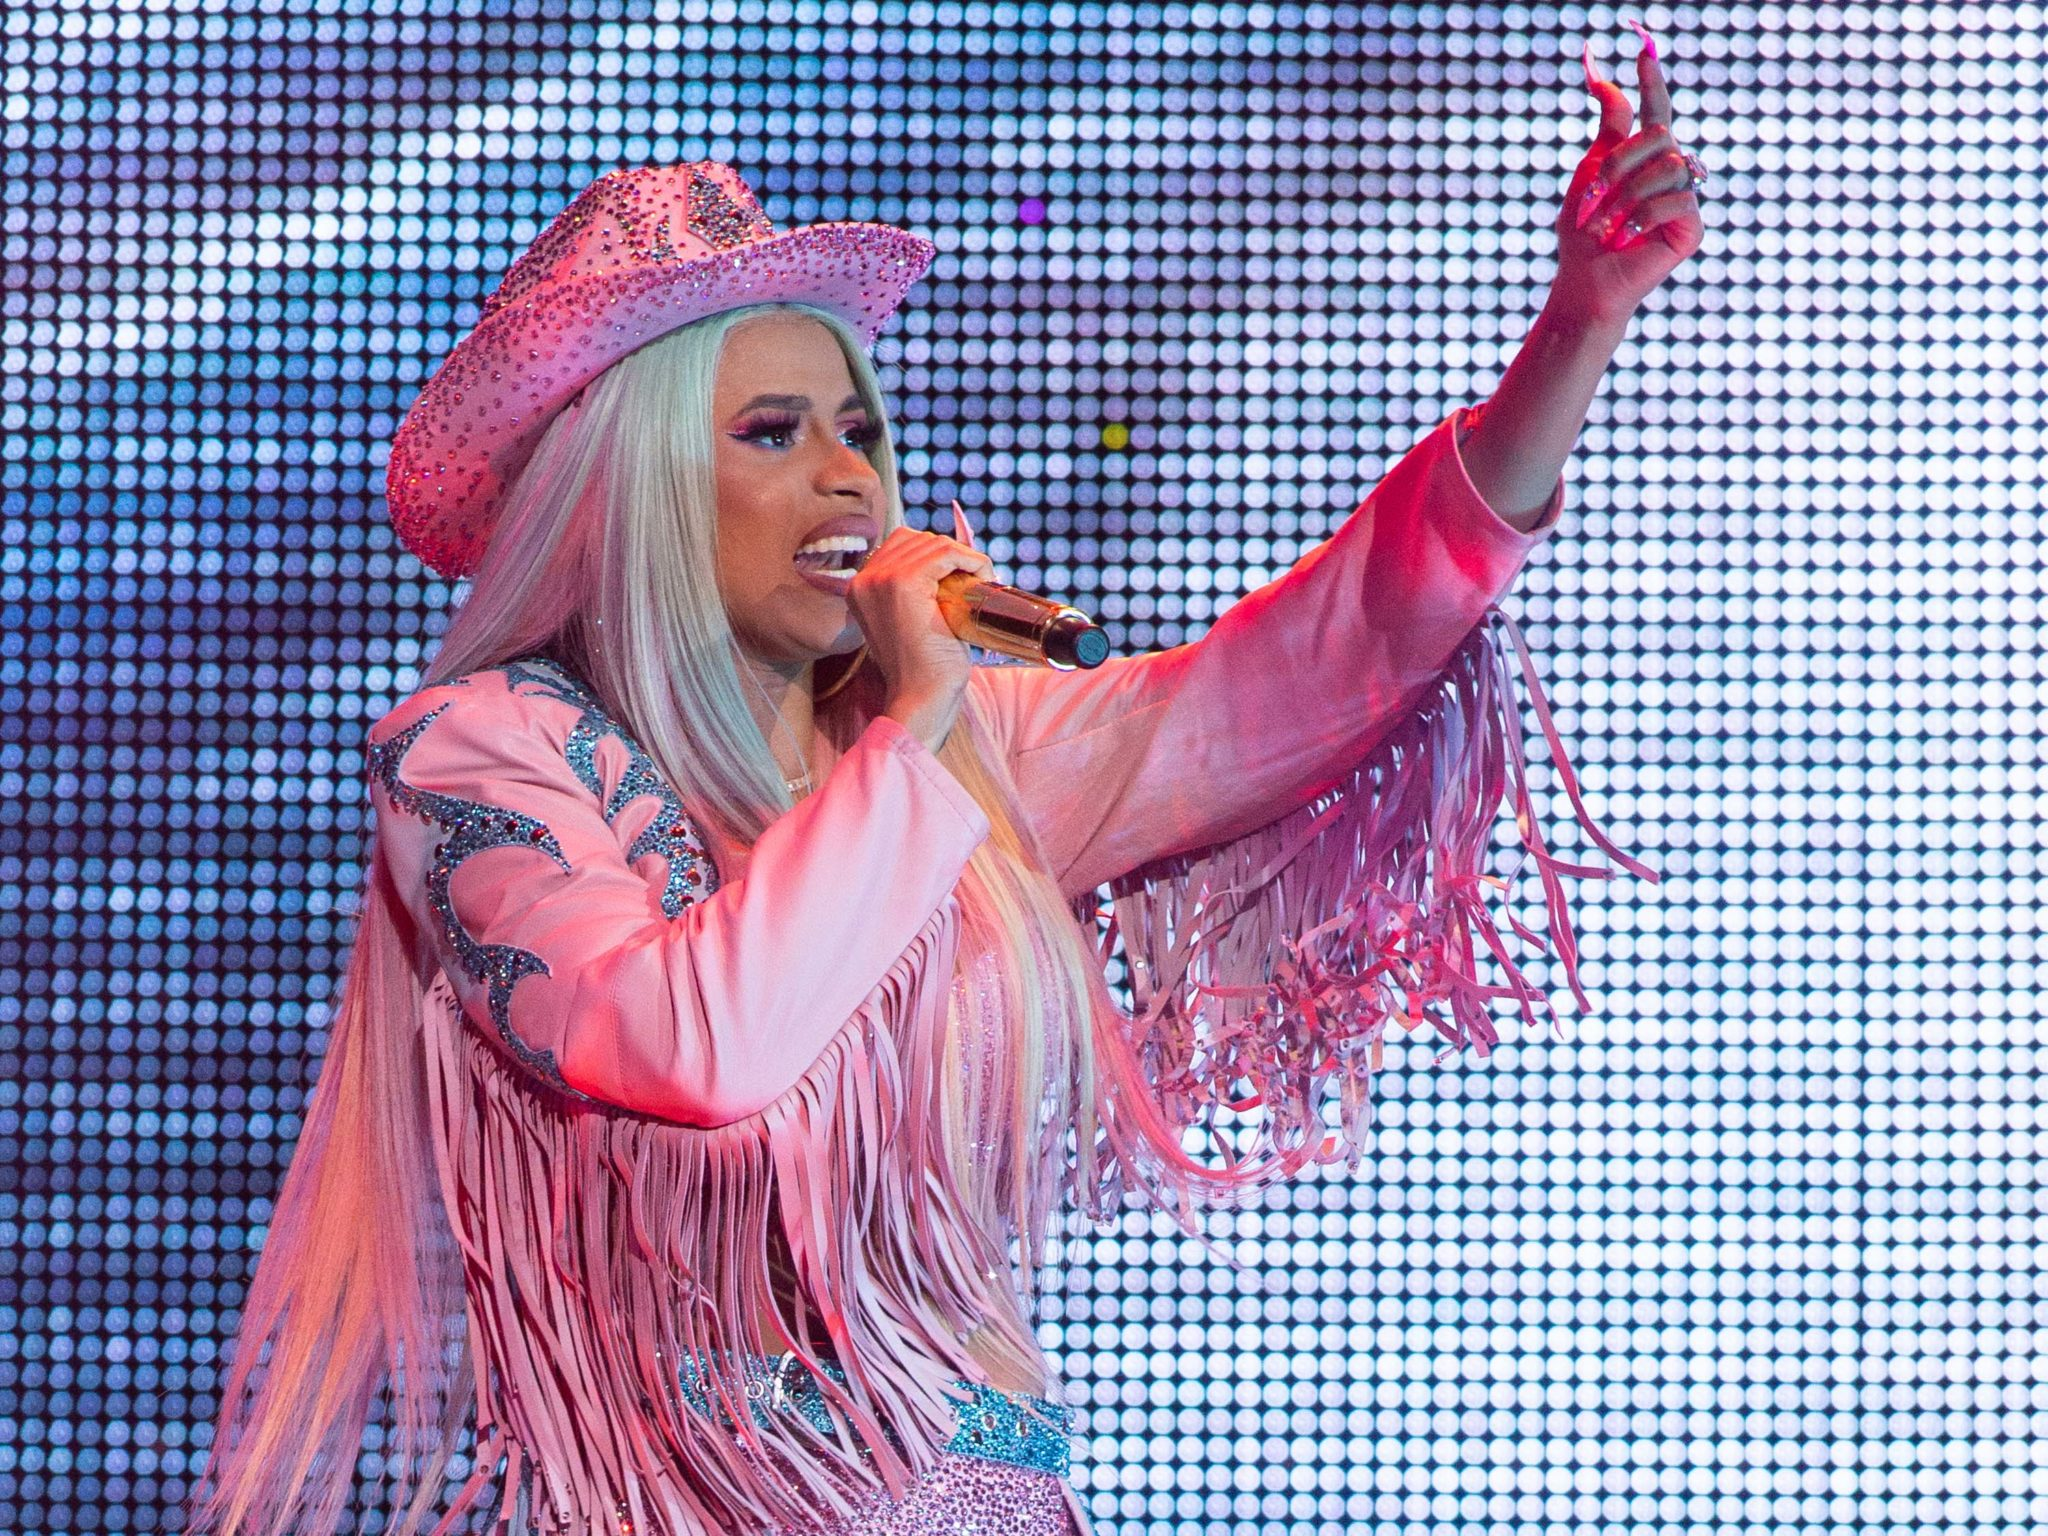 Cardi B Performs at Rodeo Houston at NRG Stadium (Photo by F. Carter Smith)